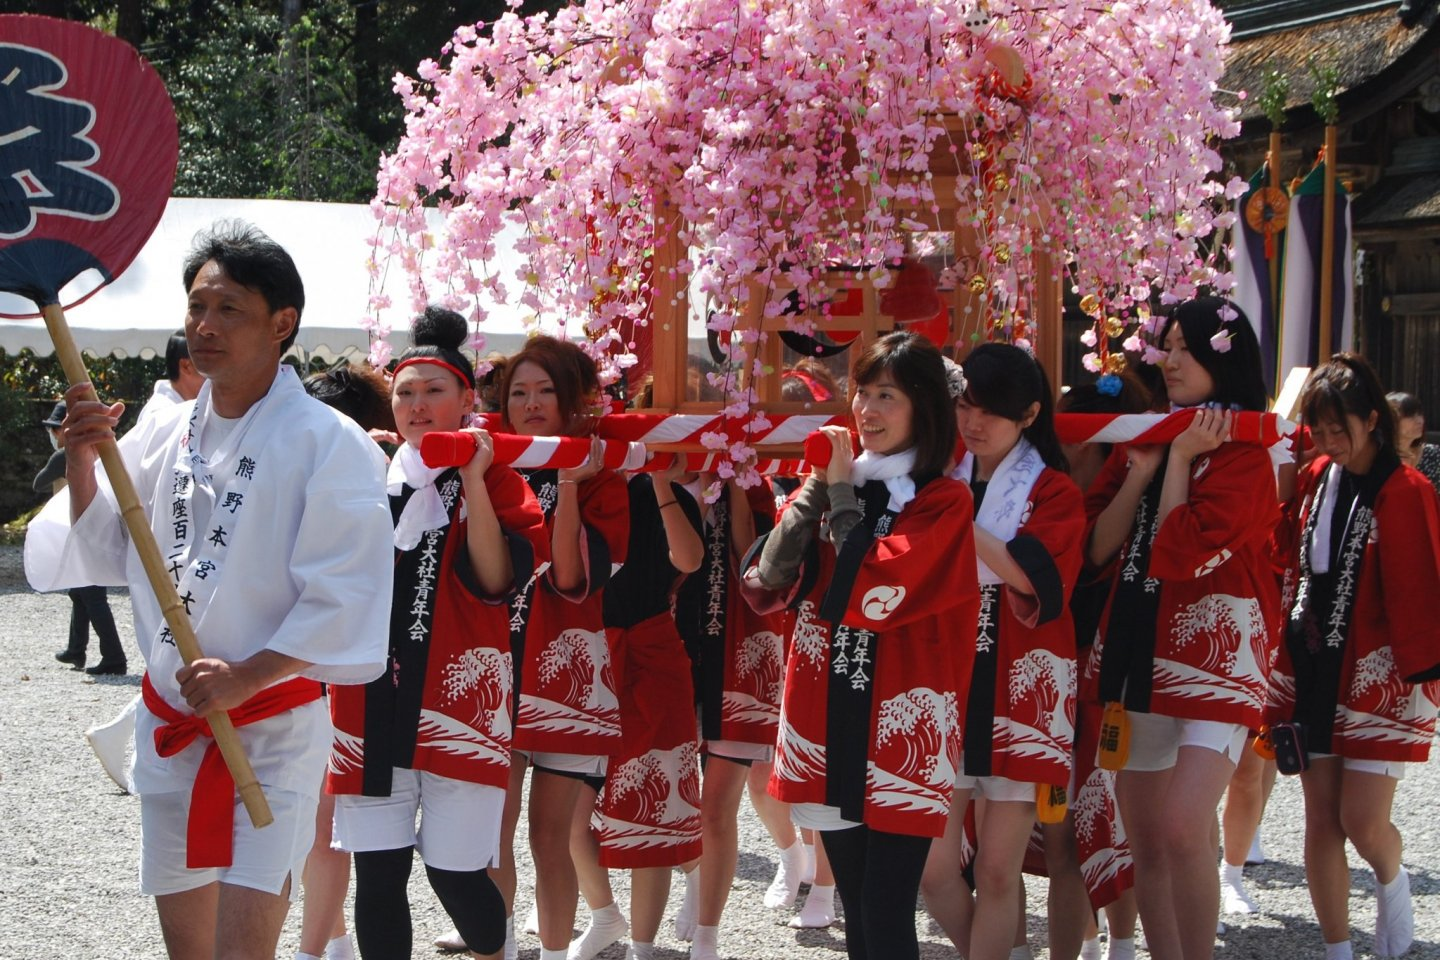 Mikoshi carried by young women during the Kumano Hongu shrine spring festival in April each year.